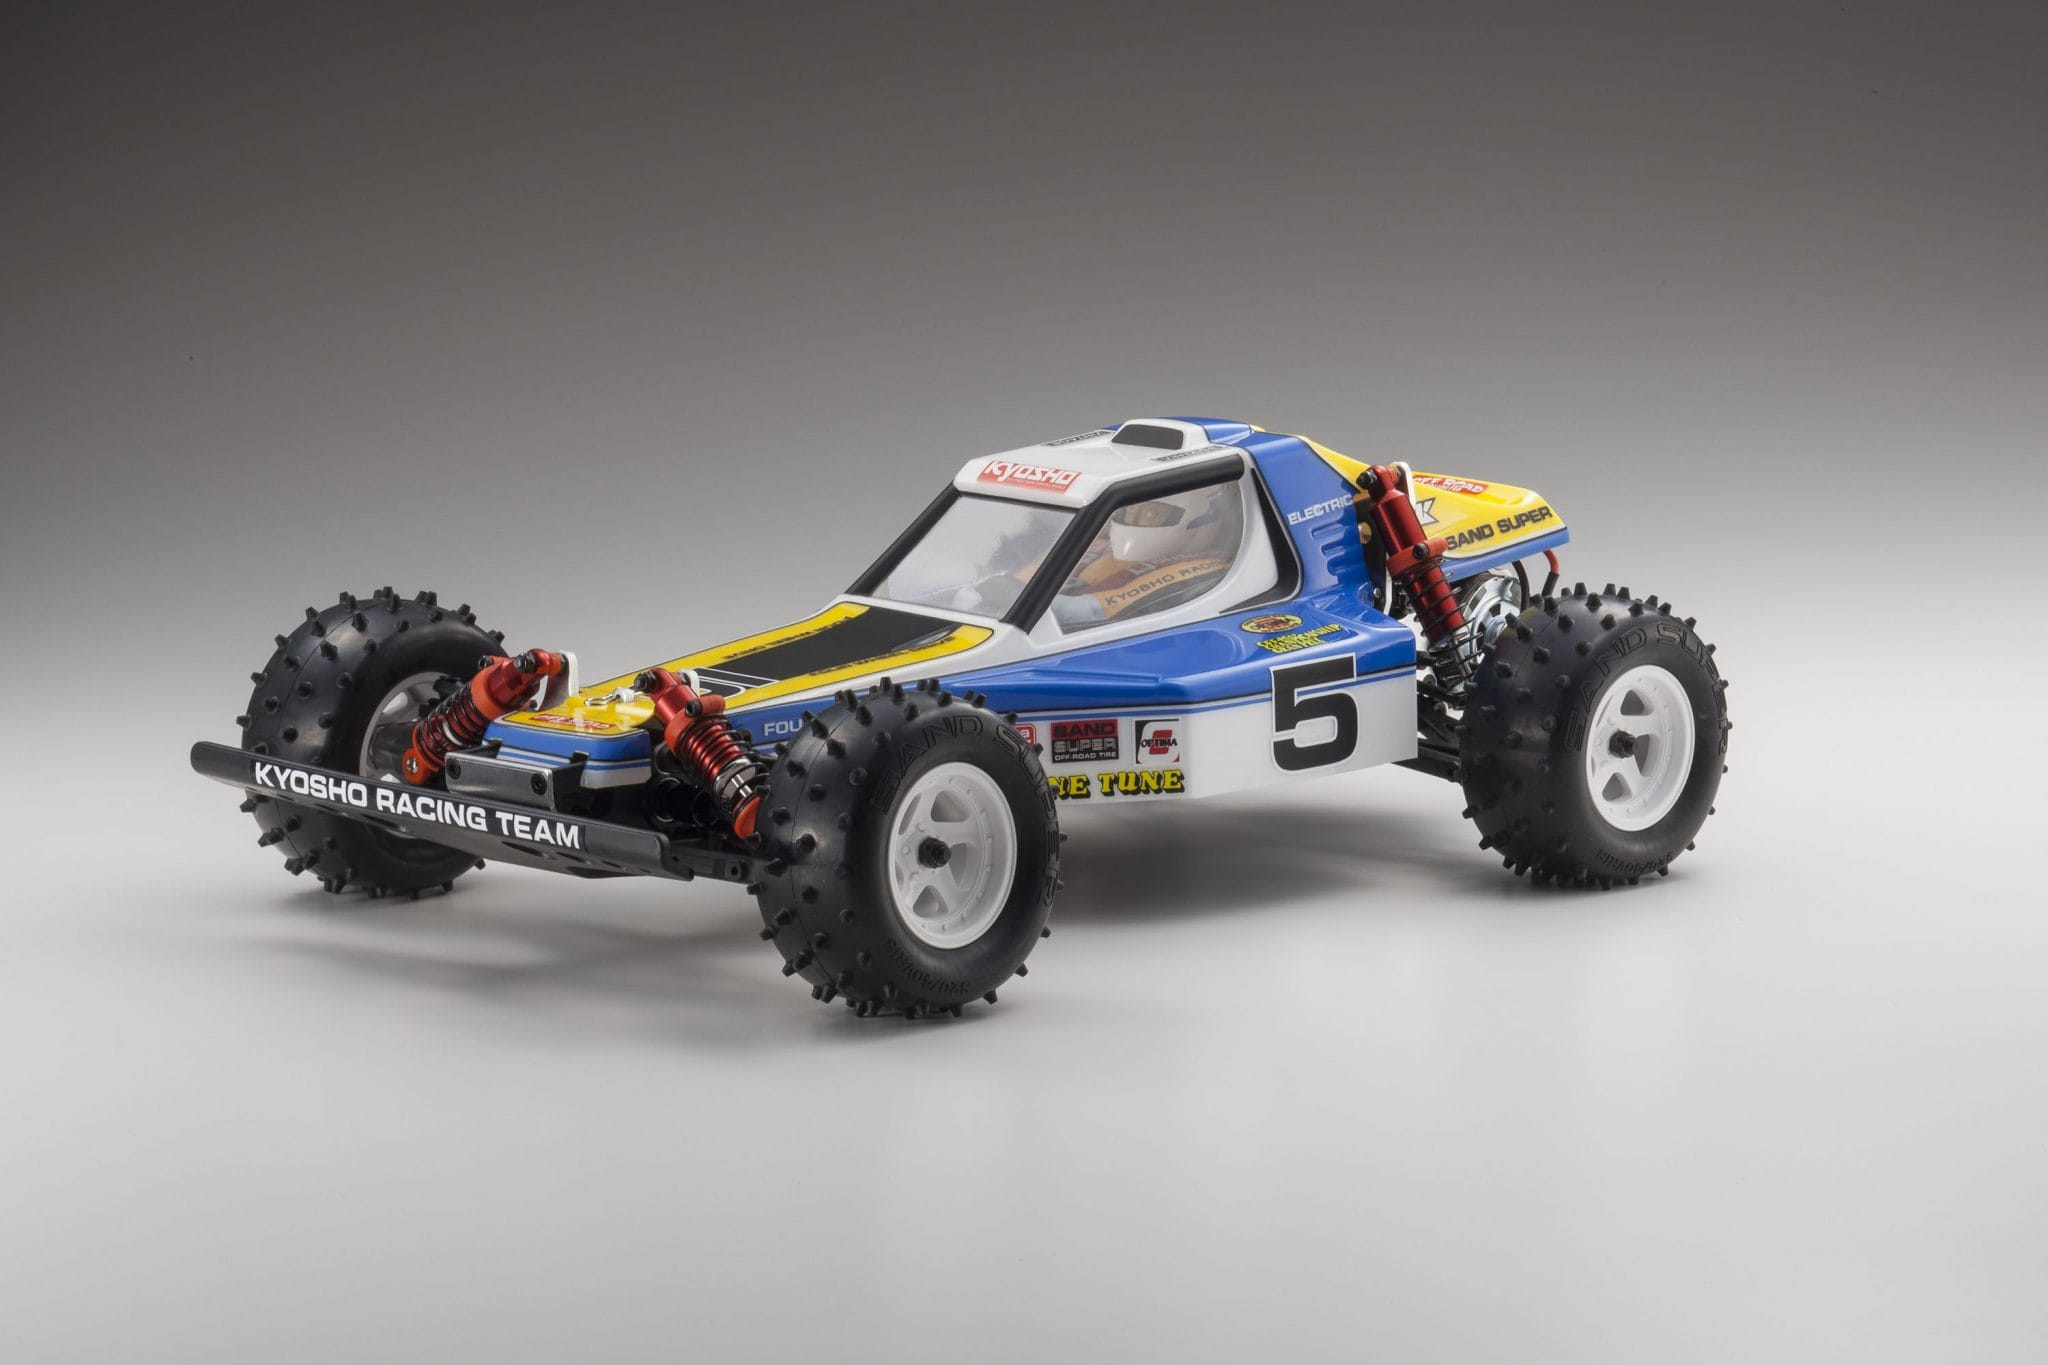 Kyosho Re-releases the Optima 4WD Off-road Buggy Kit | RC Newb